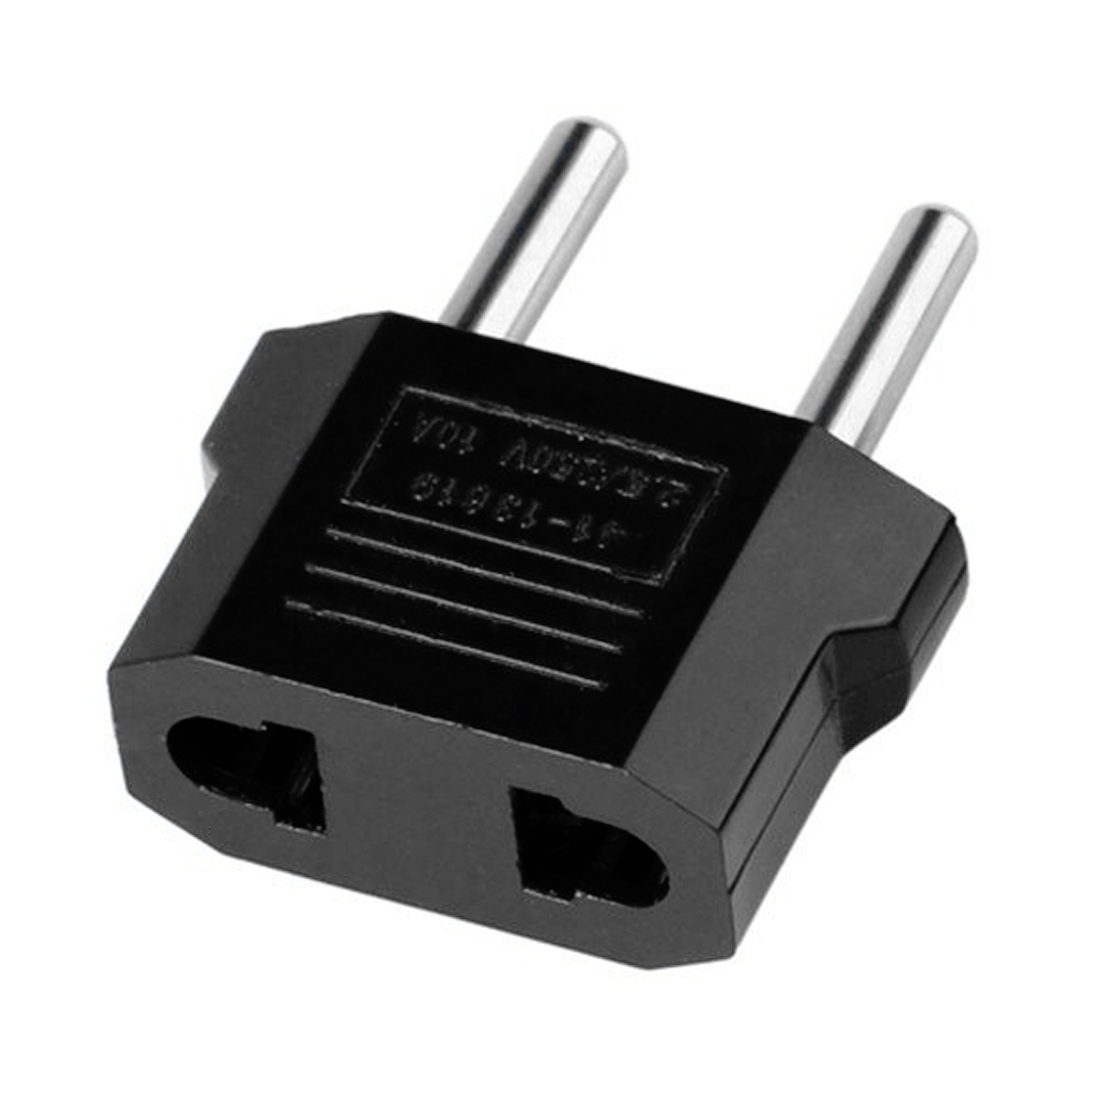 European EU Power Electric Plug Adapter American China Japan US To EU Euro Travel Adapter AC Power Cord Charger Sockets Outlet